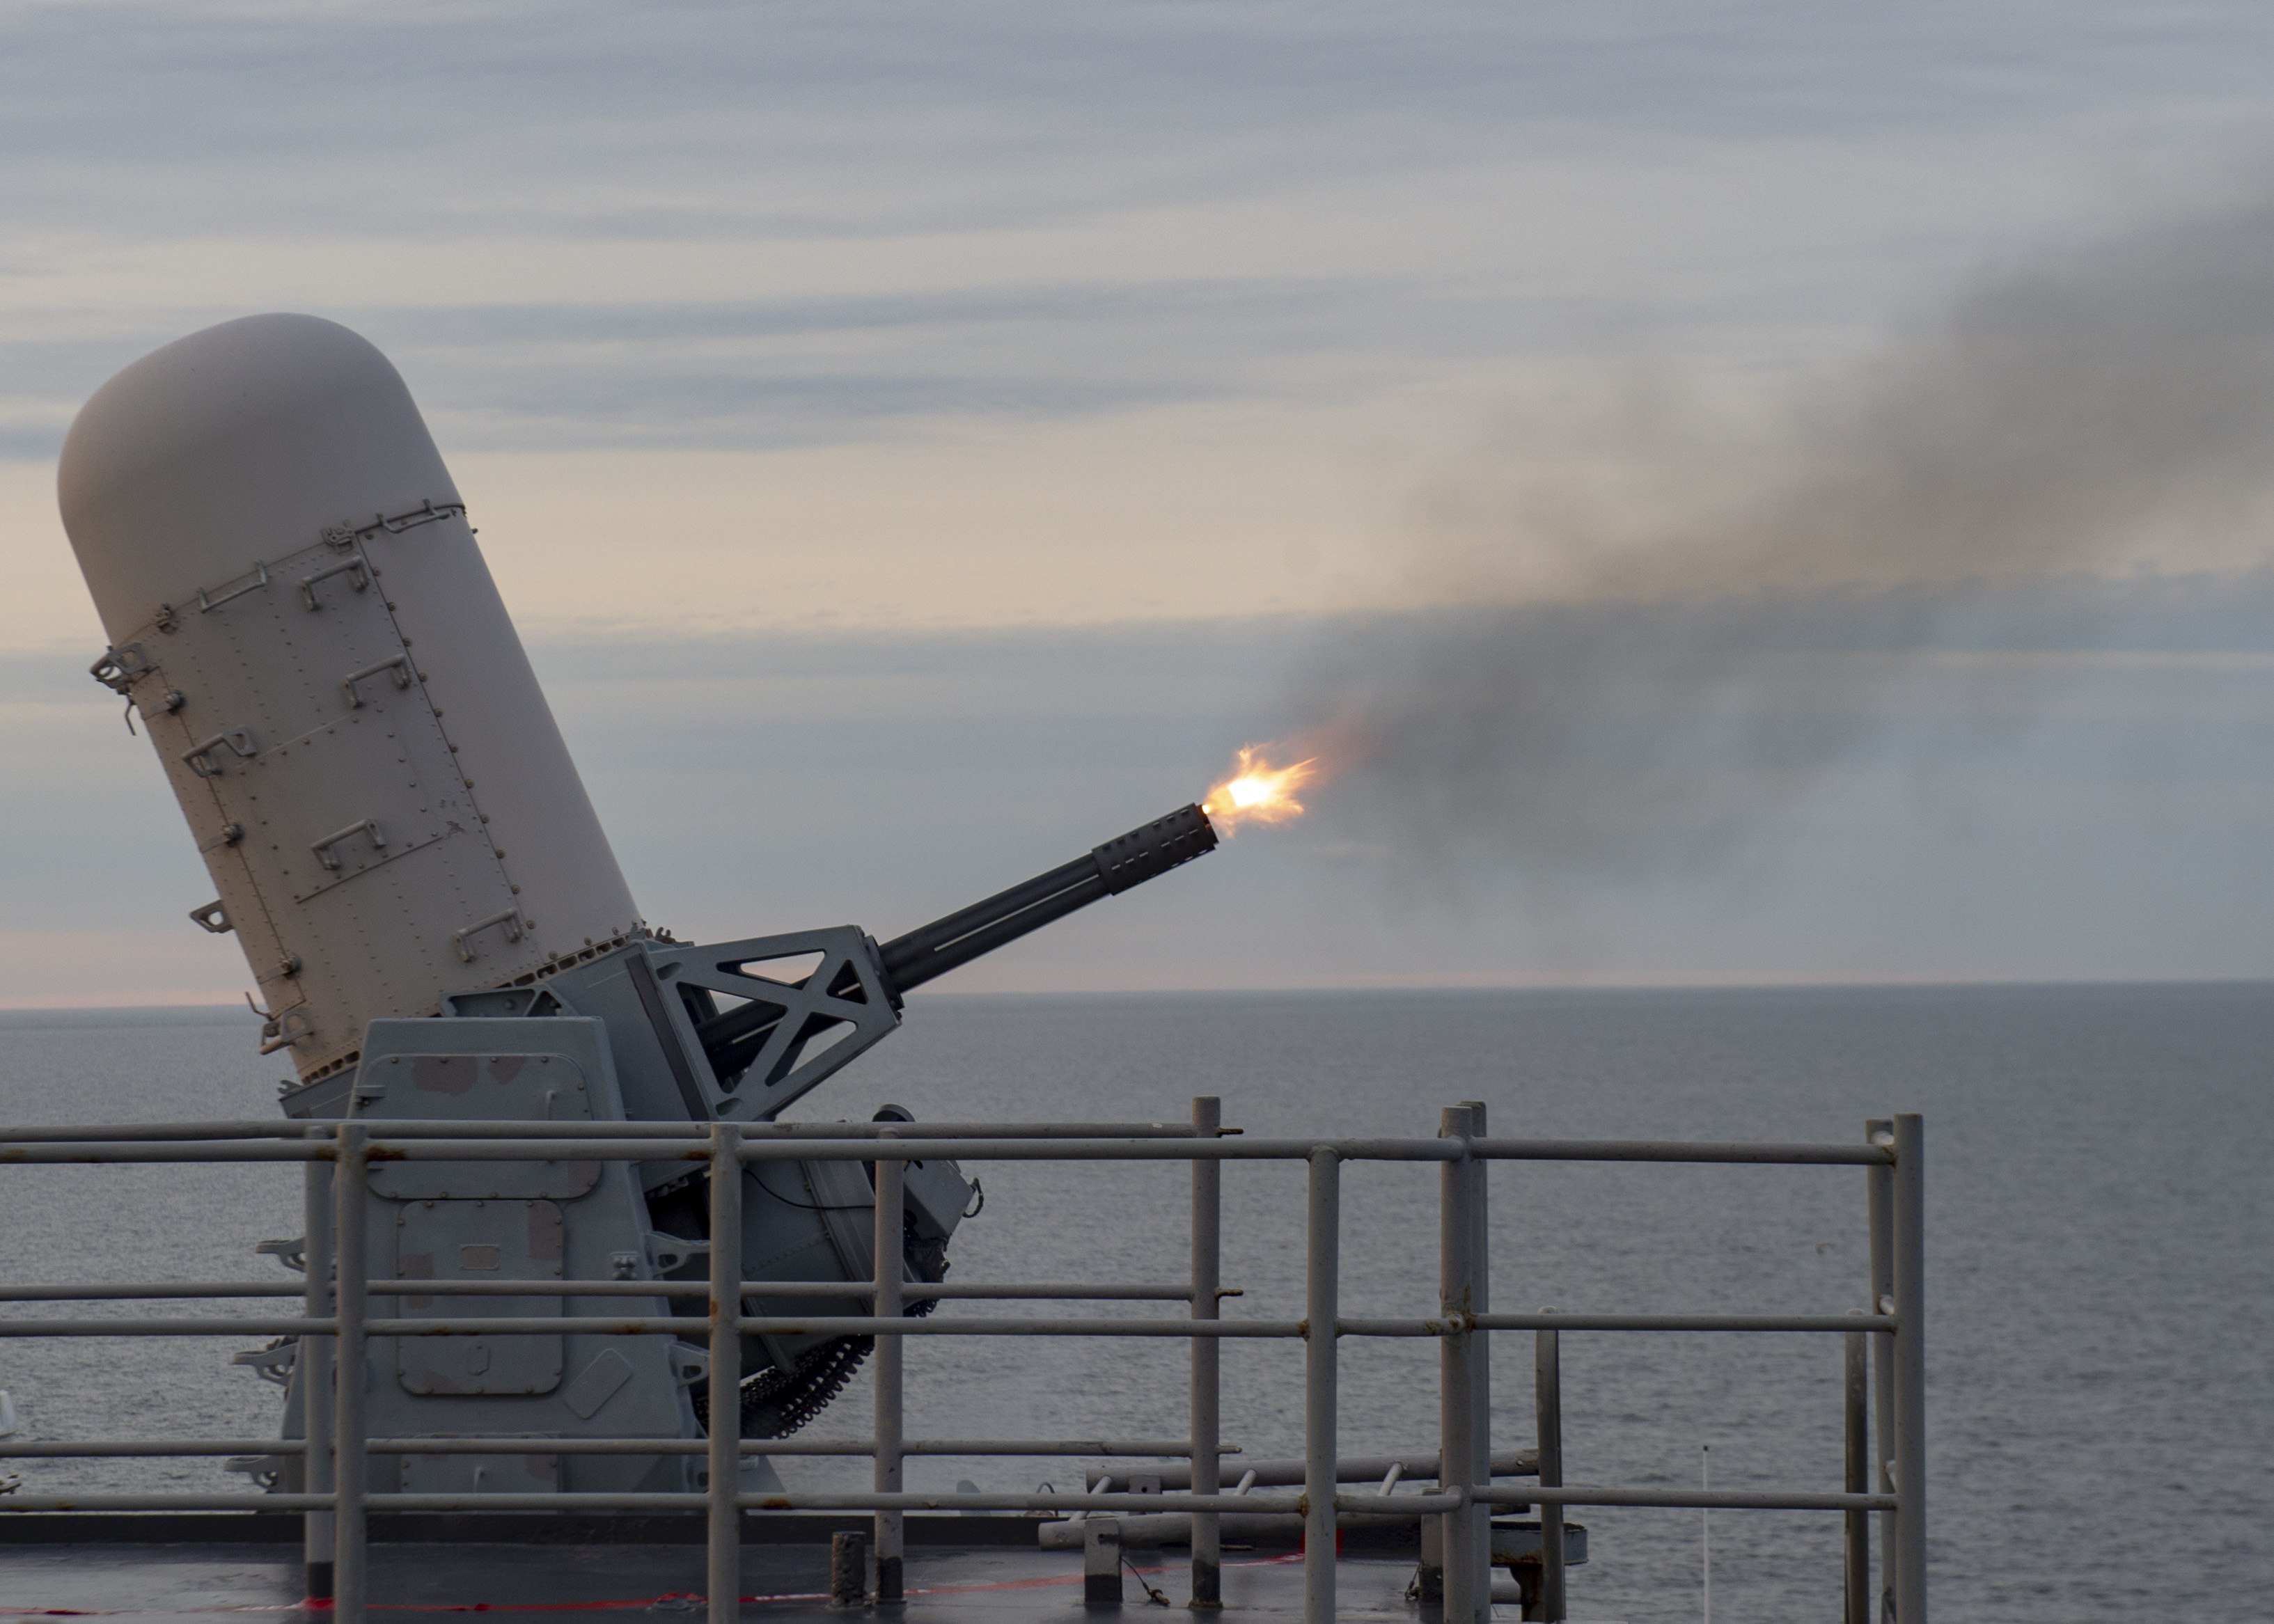 The CIWS is a fast-firing defensive weapon. The challenges of target identification and autonomous response are central to ethical questions around the use of AI in war. (Chris Roys / Navy)